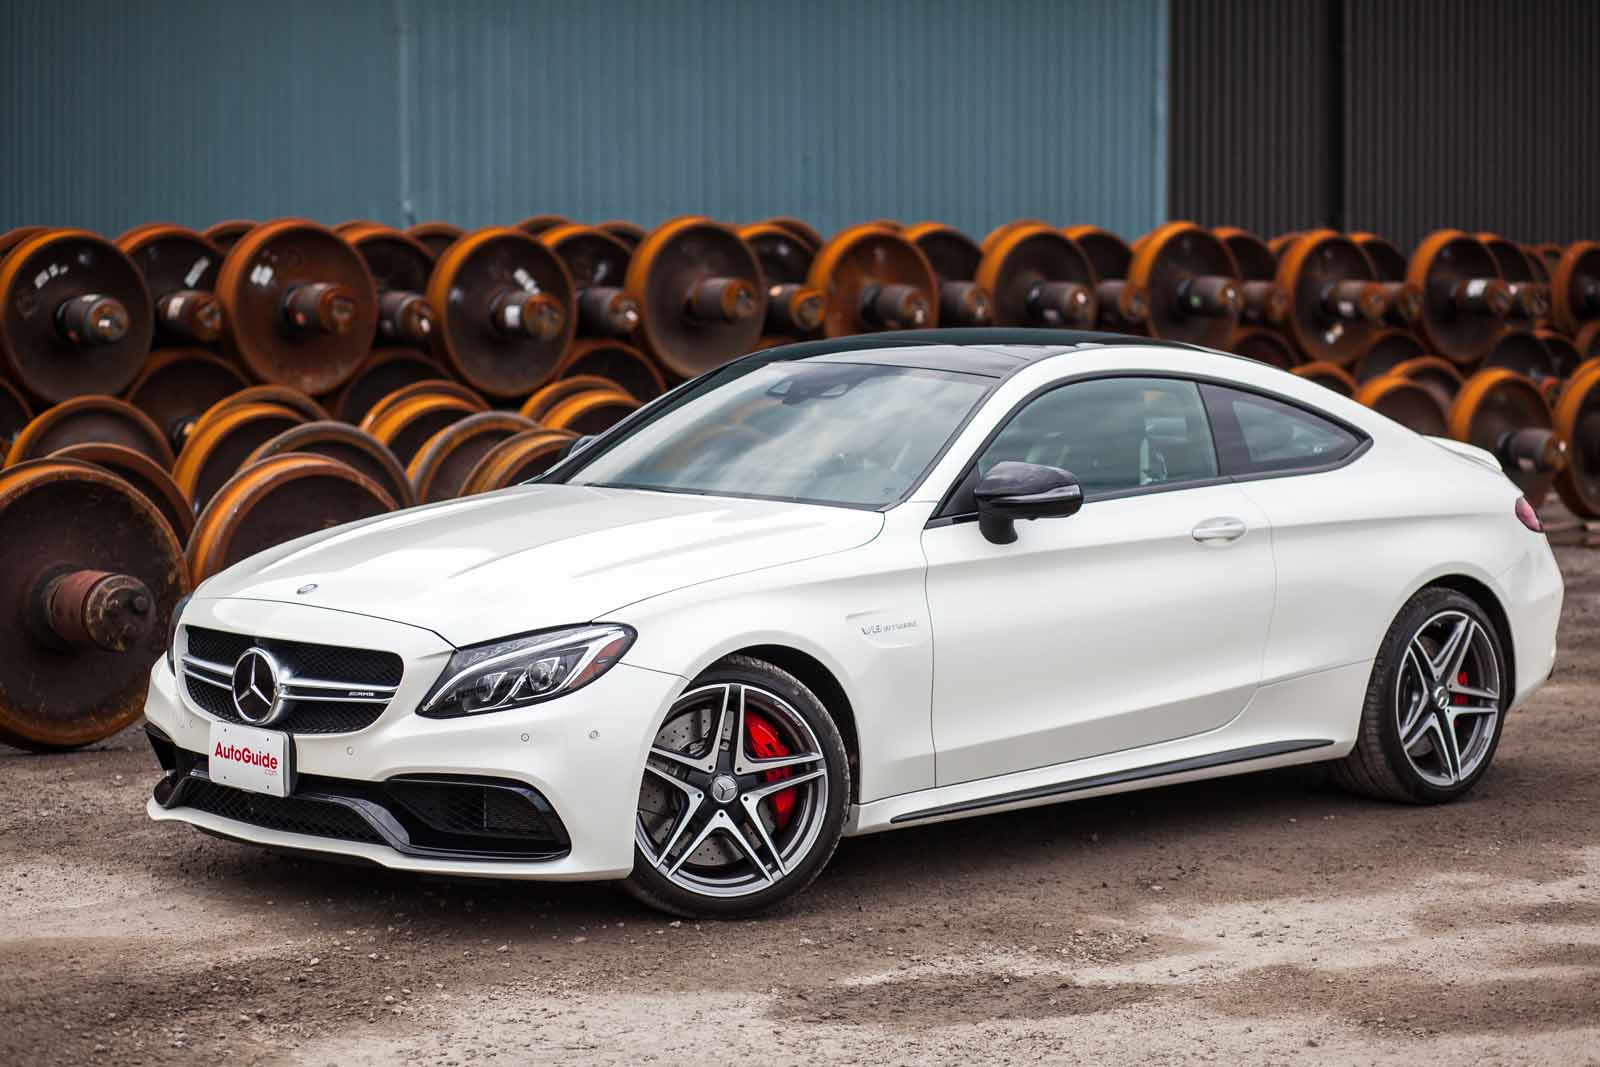 2017 Mercedes Amg C63 S Coupe Review Chris Smart 007